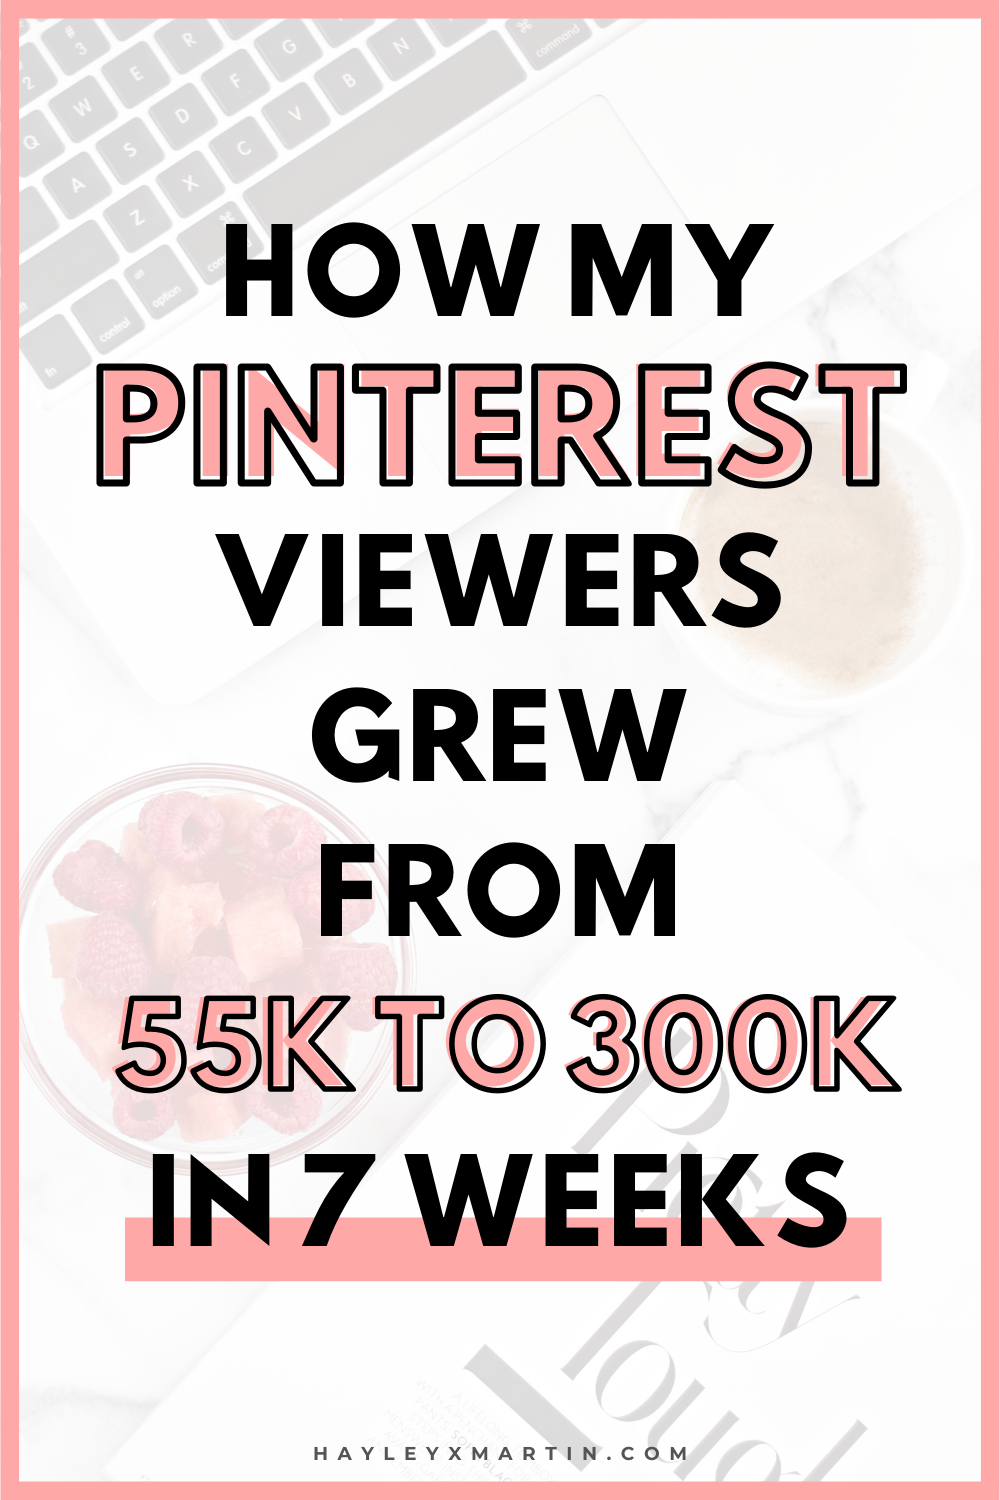 HOW MY PINTEREST VIEWERS GREW FROM 55K TO 300K IN 7WEEKS | HAYLEYXMARTIN